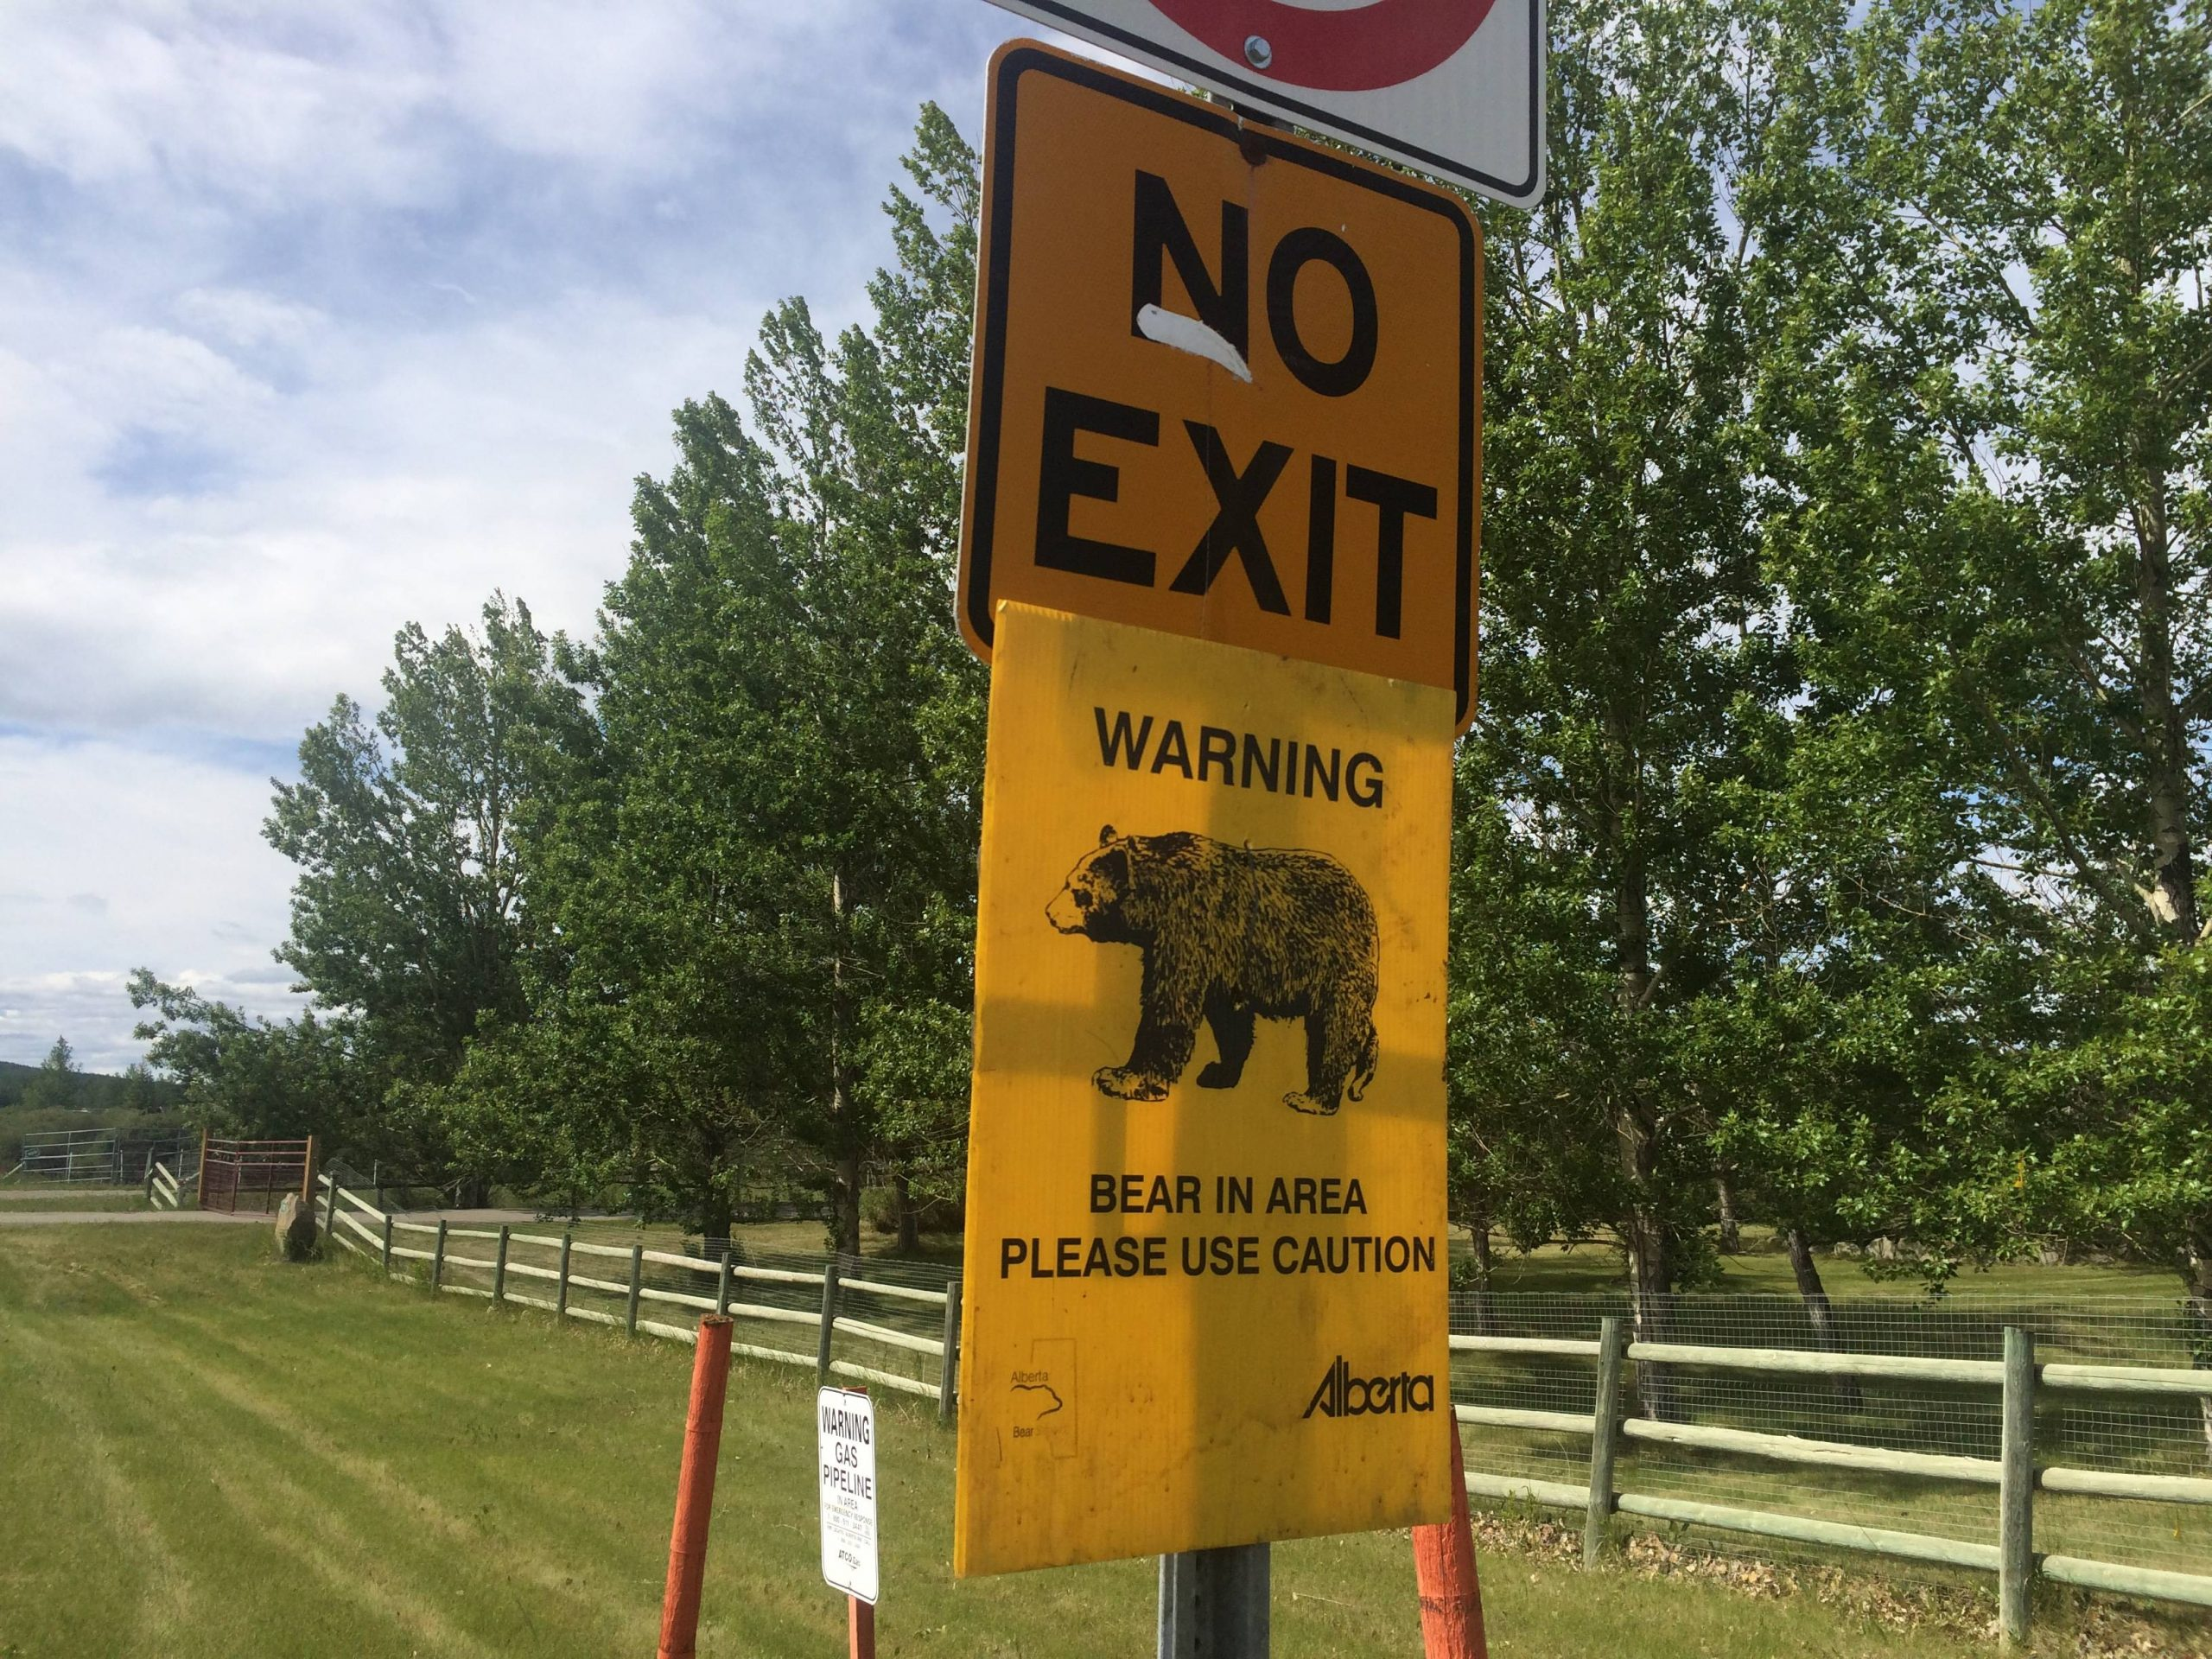 BearSmart Wood Buffalo Holding Wildlife Safety Event